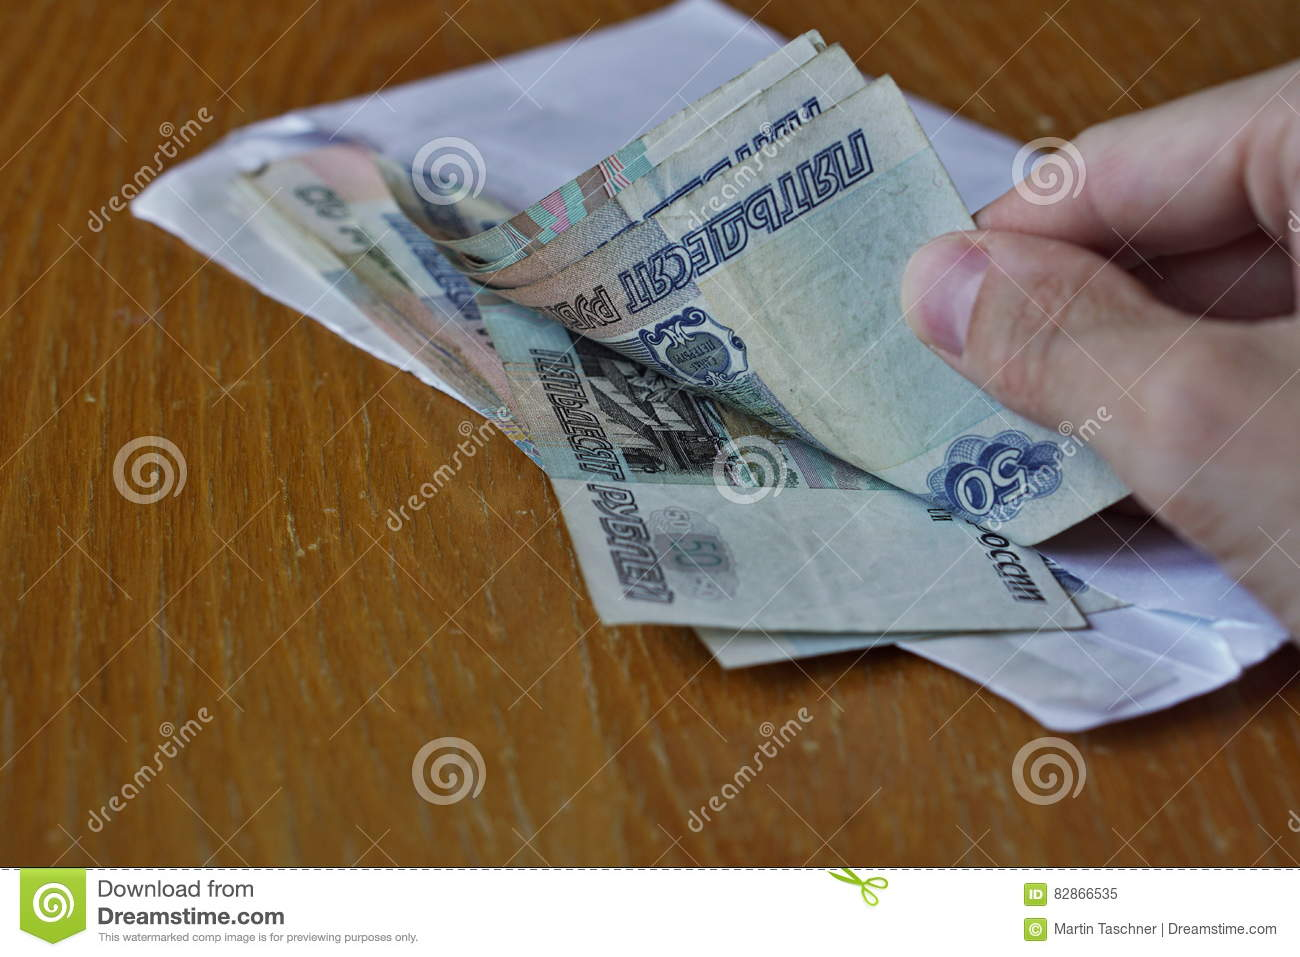 Hand Opening An Envelope Full Of Russian Currency Russian Ruble Rub